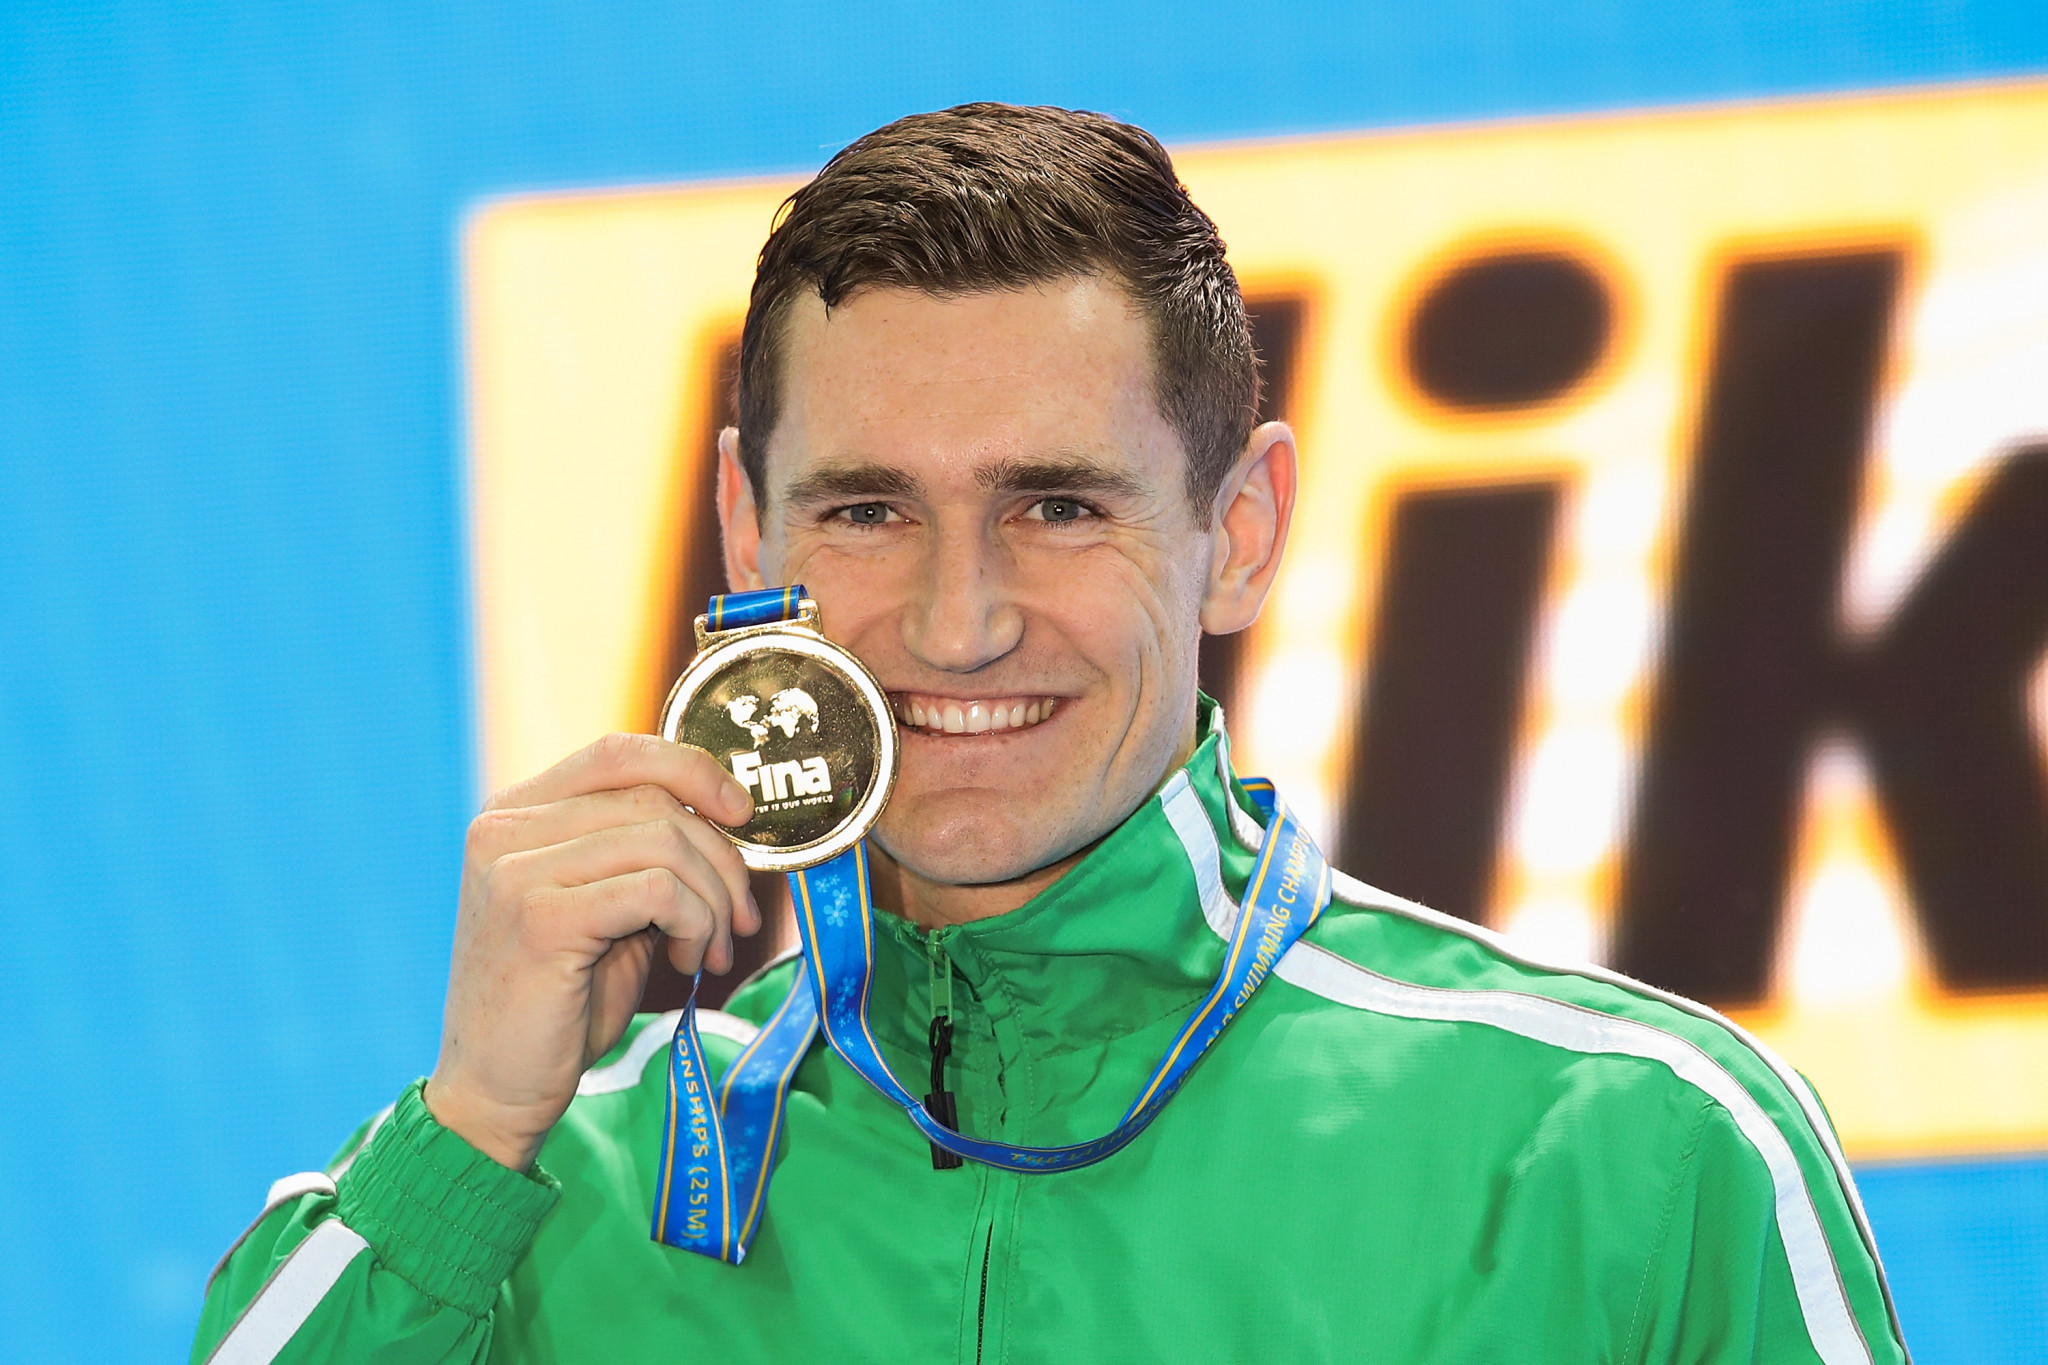 South Africa's Cameron van der Burgh ended his career with gold in the 50m breaststroke final ©Getty Images